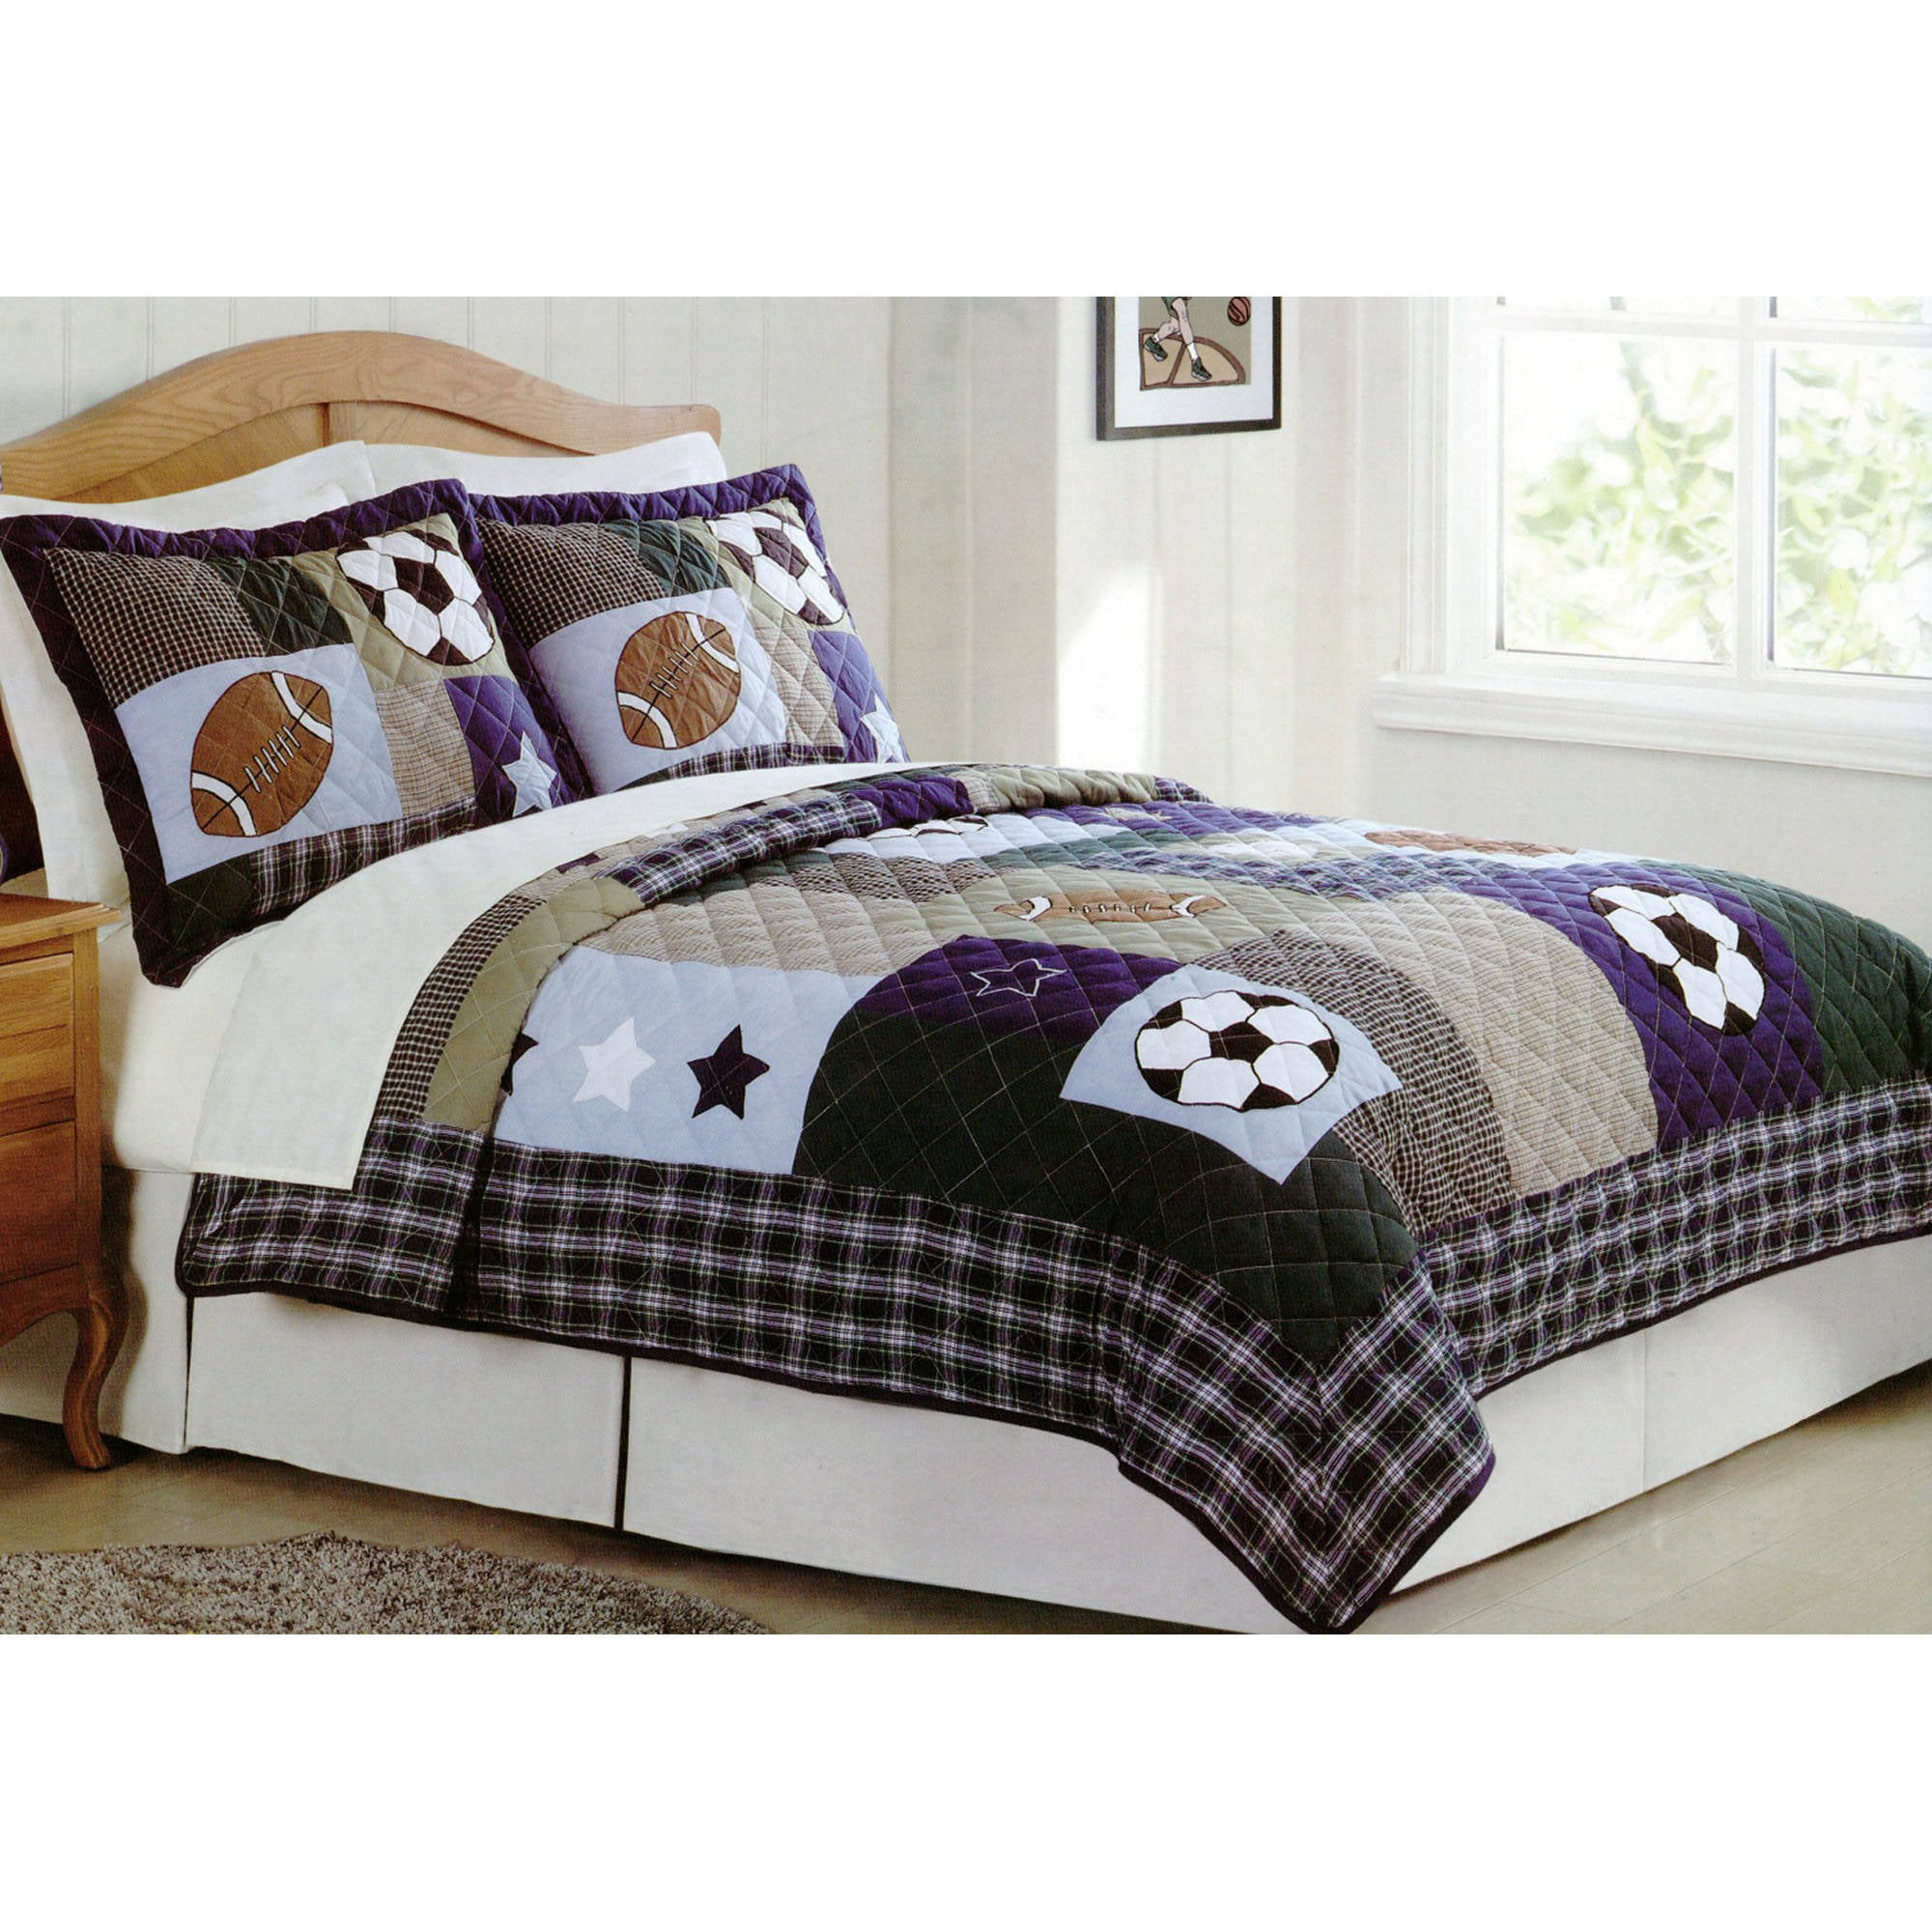 decor databreach of bedding bed home design teen last image boy ideas